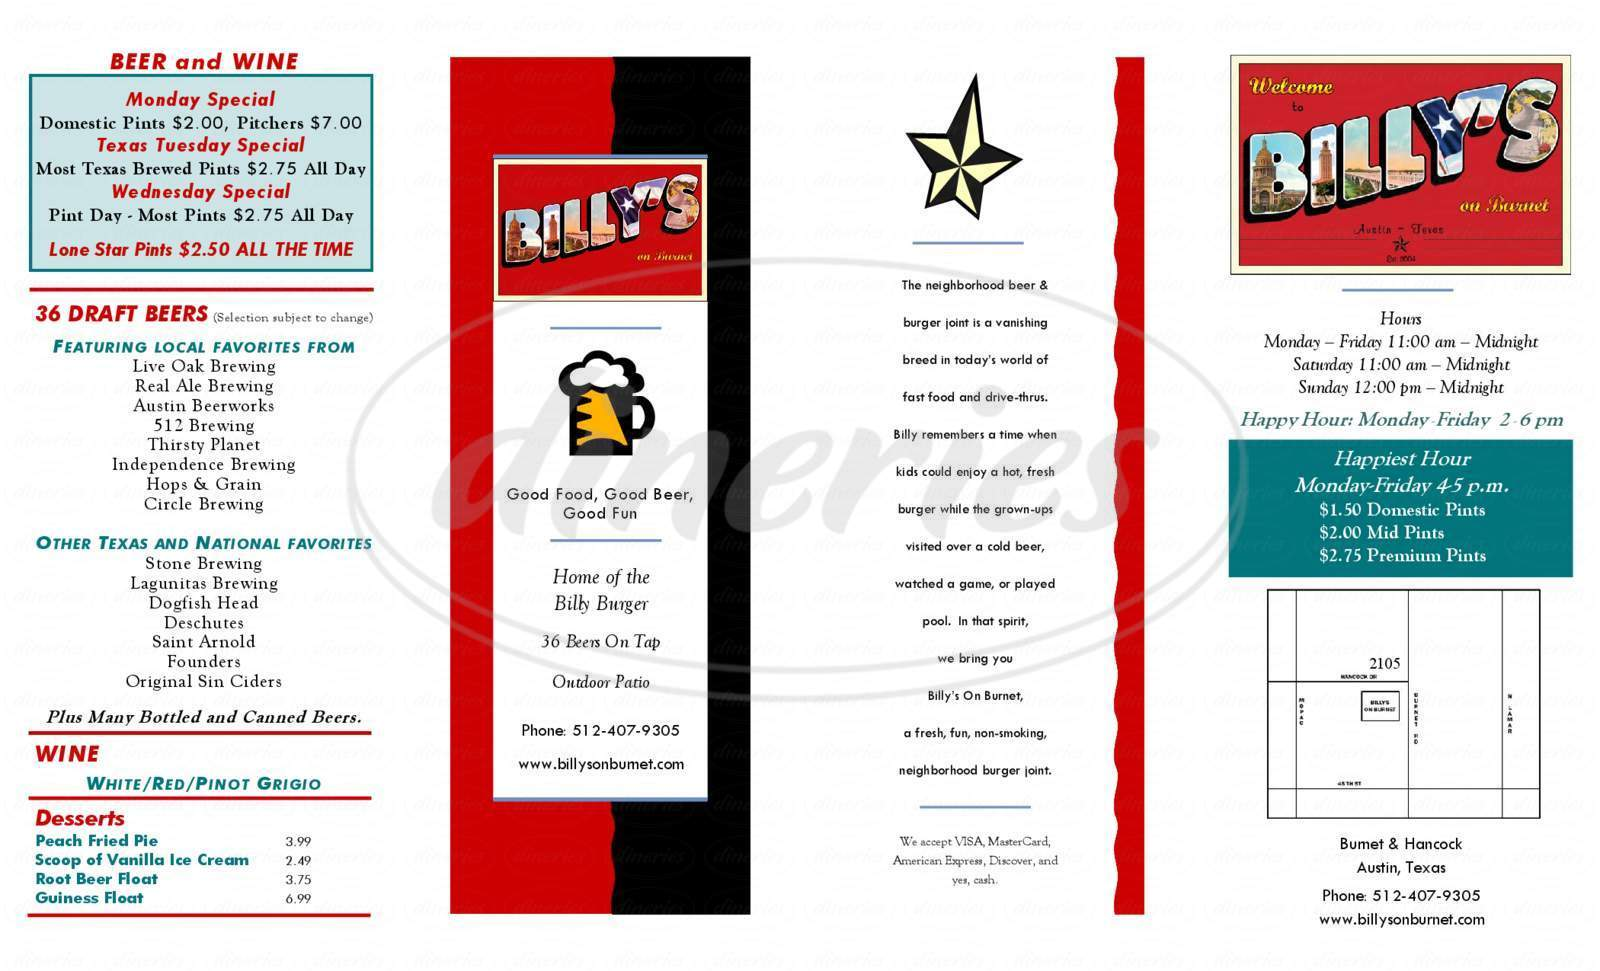 menu for Billy's on Burnet